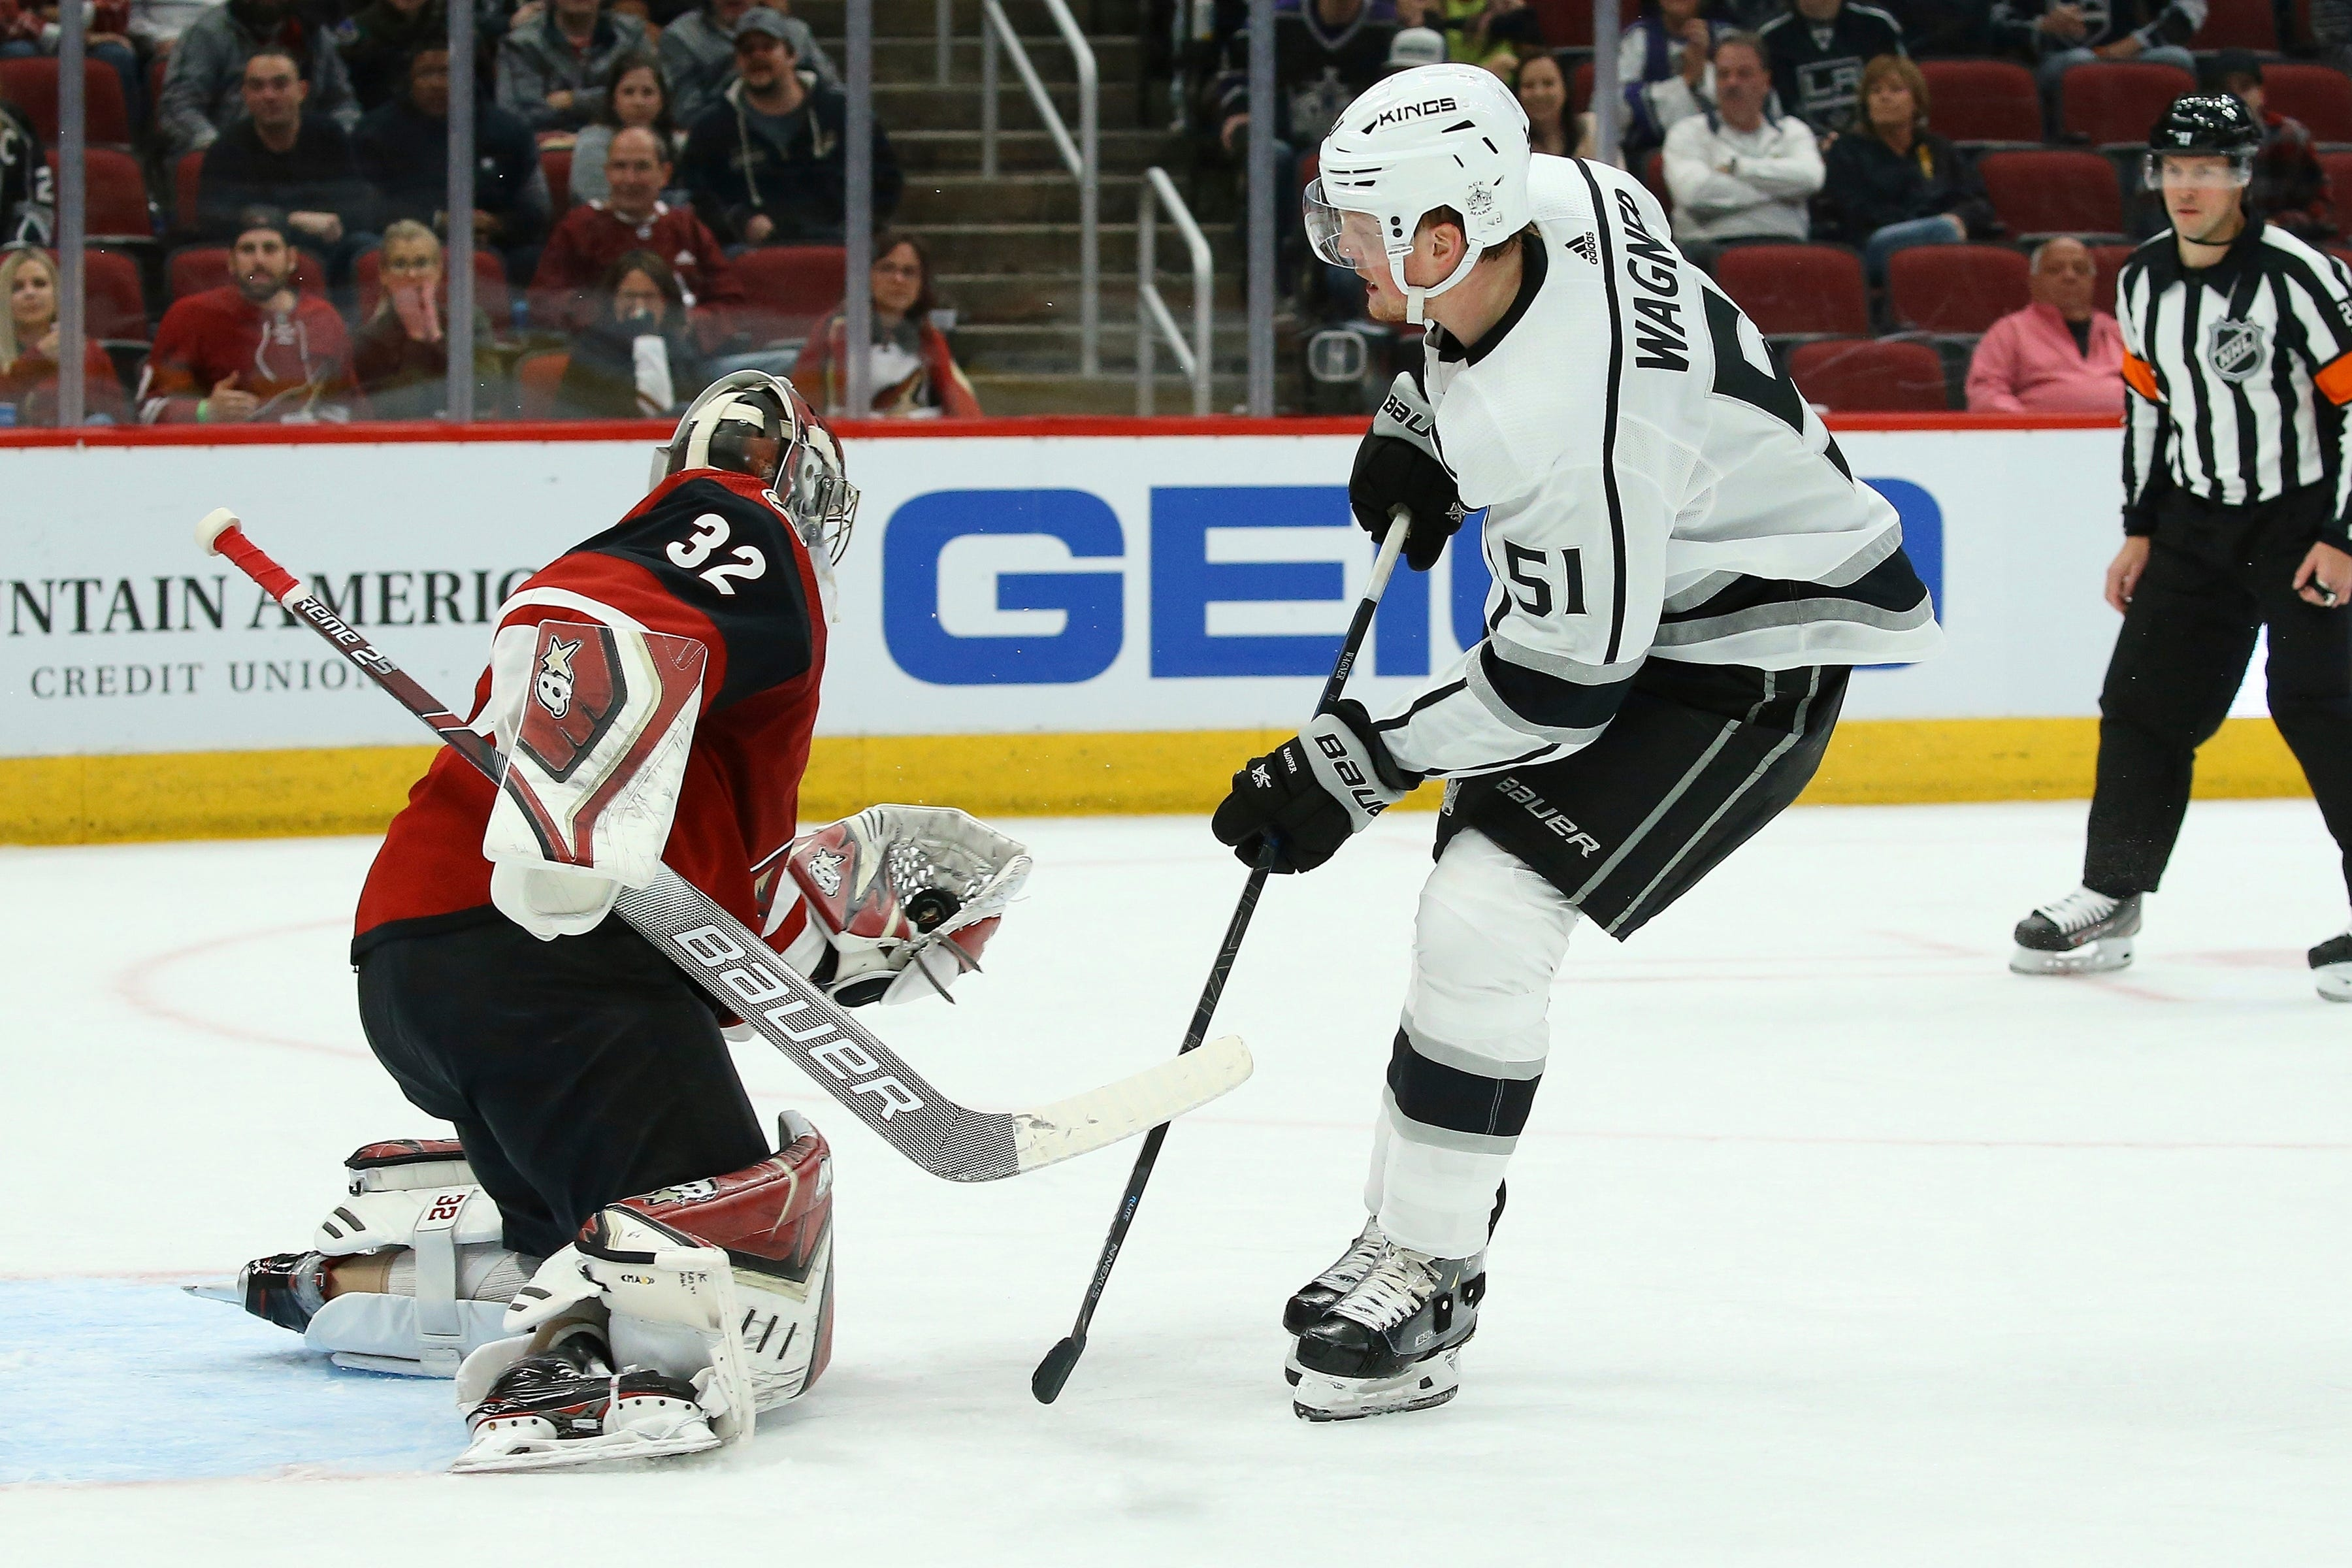 Den's Digest: Coyotes goaltenders shining in back-to-back shutouts